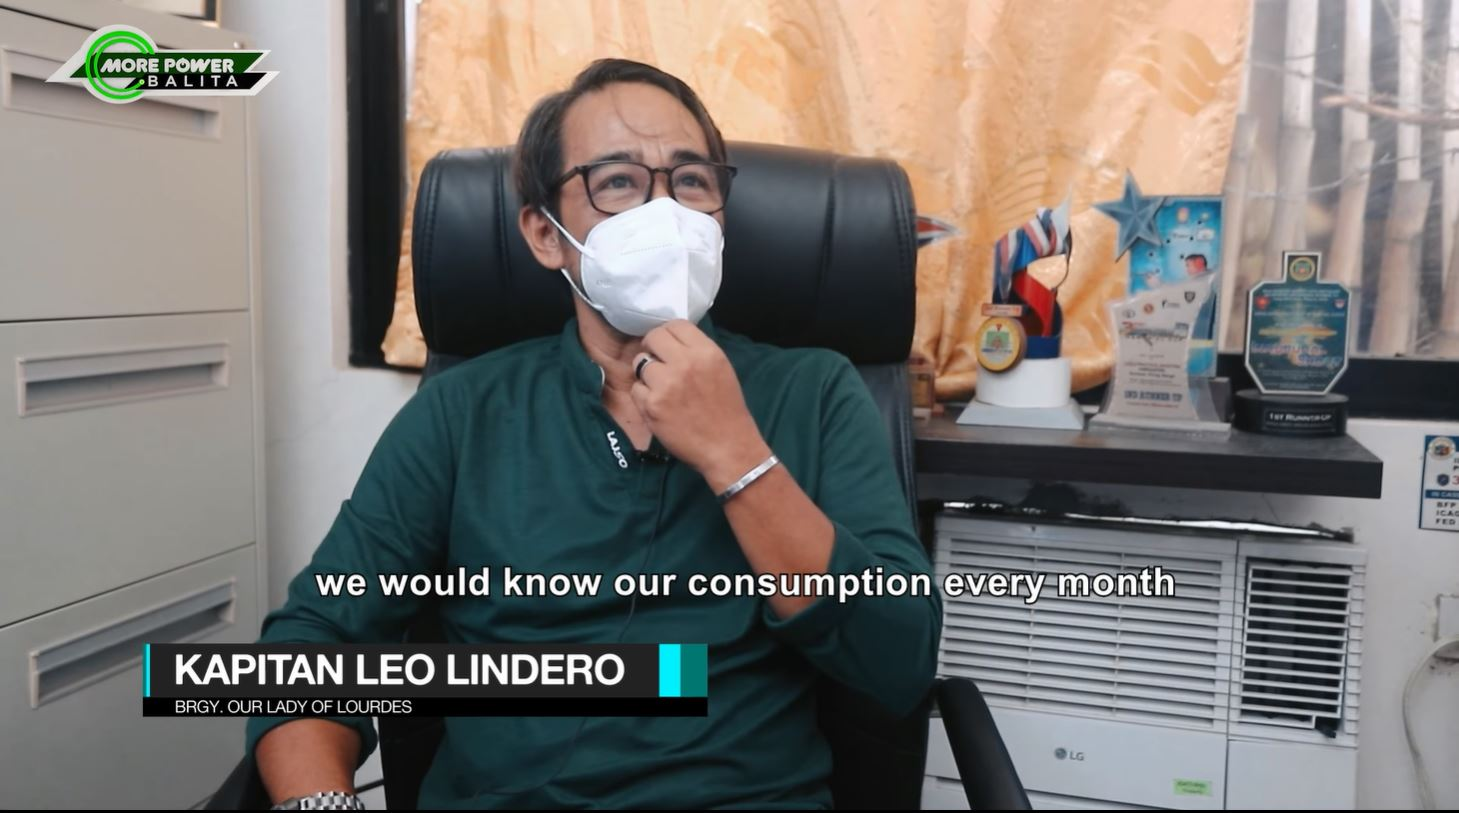 Our Lady of Lourdes' Brgy. Captain Leo Lindero mentioned that they have started tapping into the power line of the city government since the establishment of its barangay hall. However, since there is no available power meter for their utilization, they are often left clueless on how much should they pay for their power consumption.